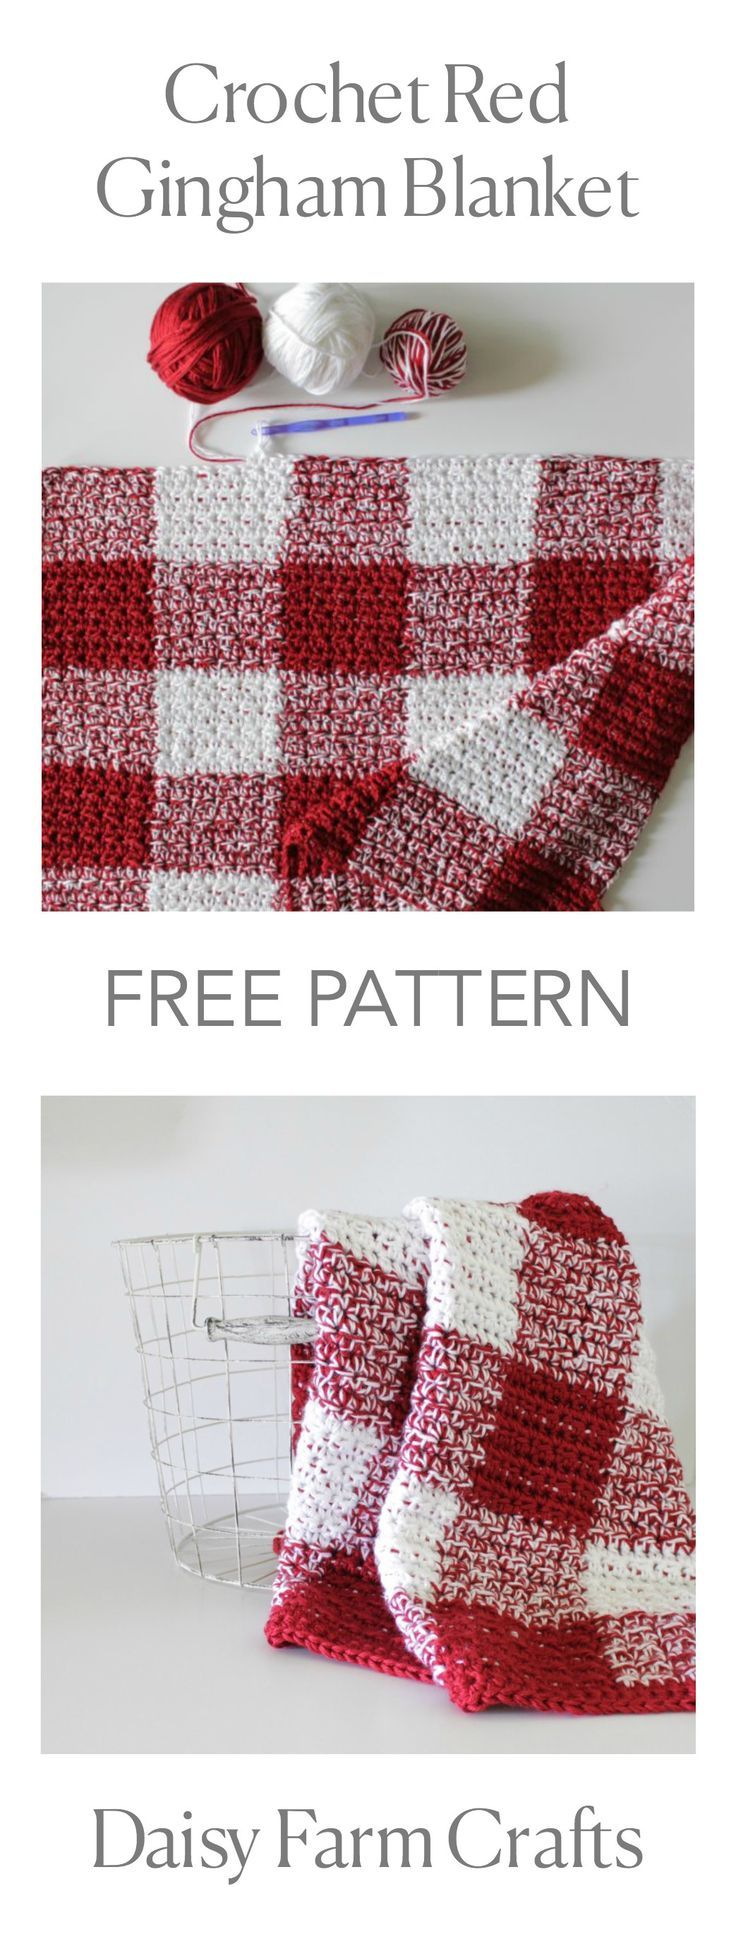 FREE PATTERN - Crochet Red Gingham Blanket  Darcy777 - I don't know why but I love gingham